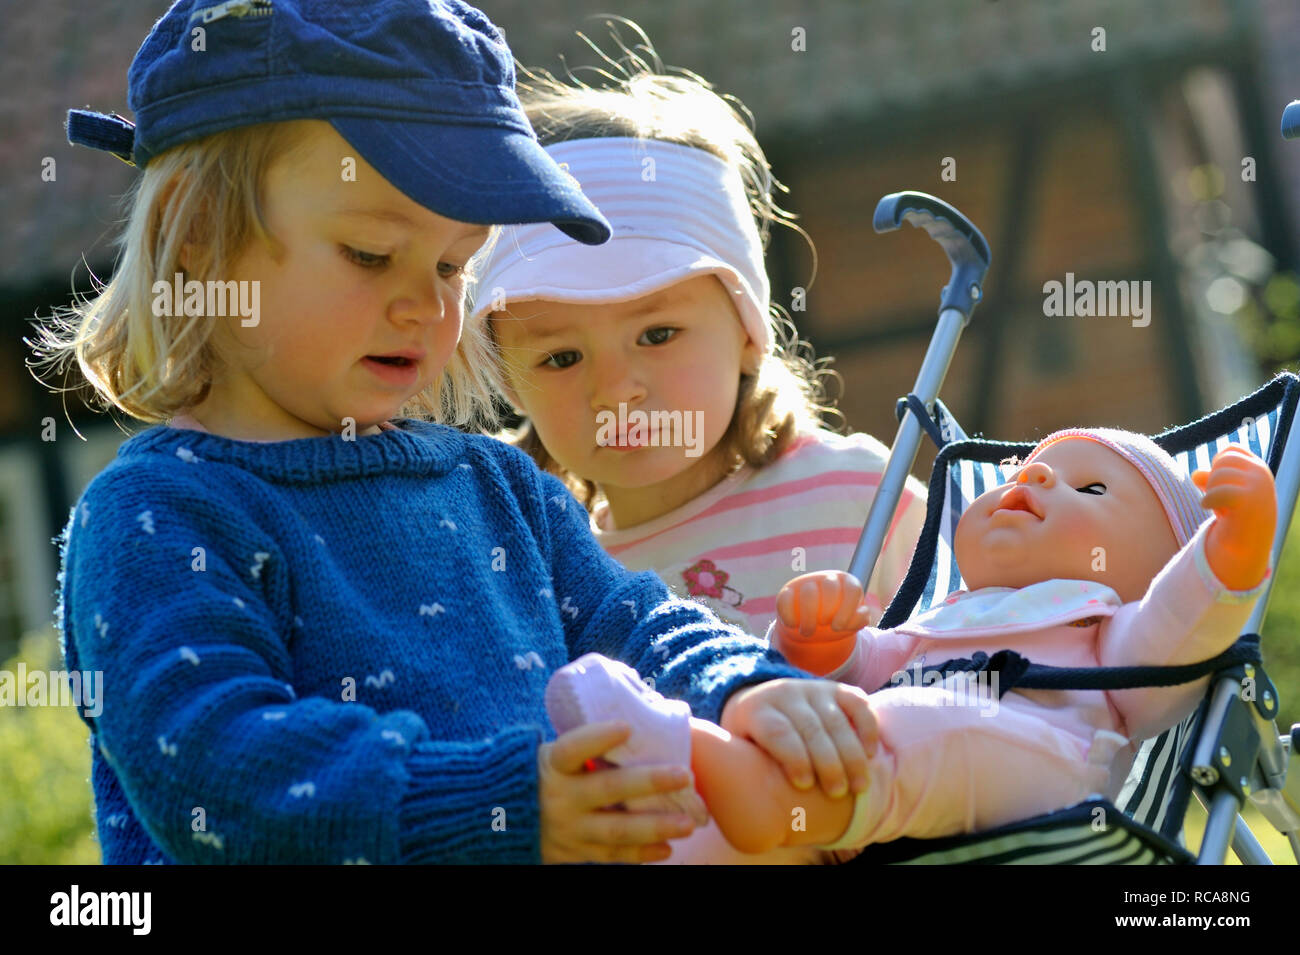 Kinder spielen mit Kinderwagen | Children playing with a buggy Stock Photo